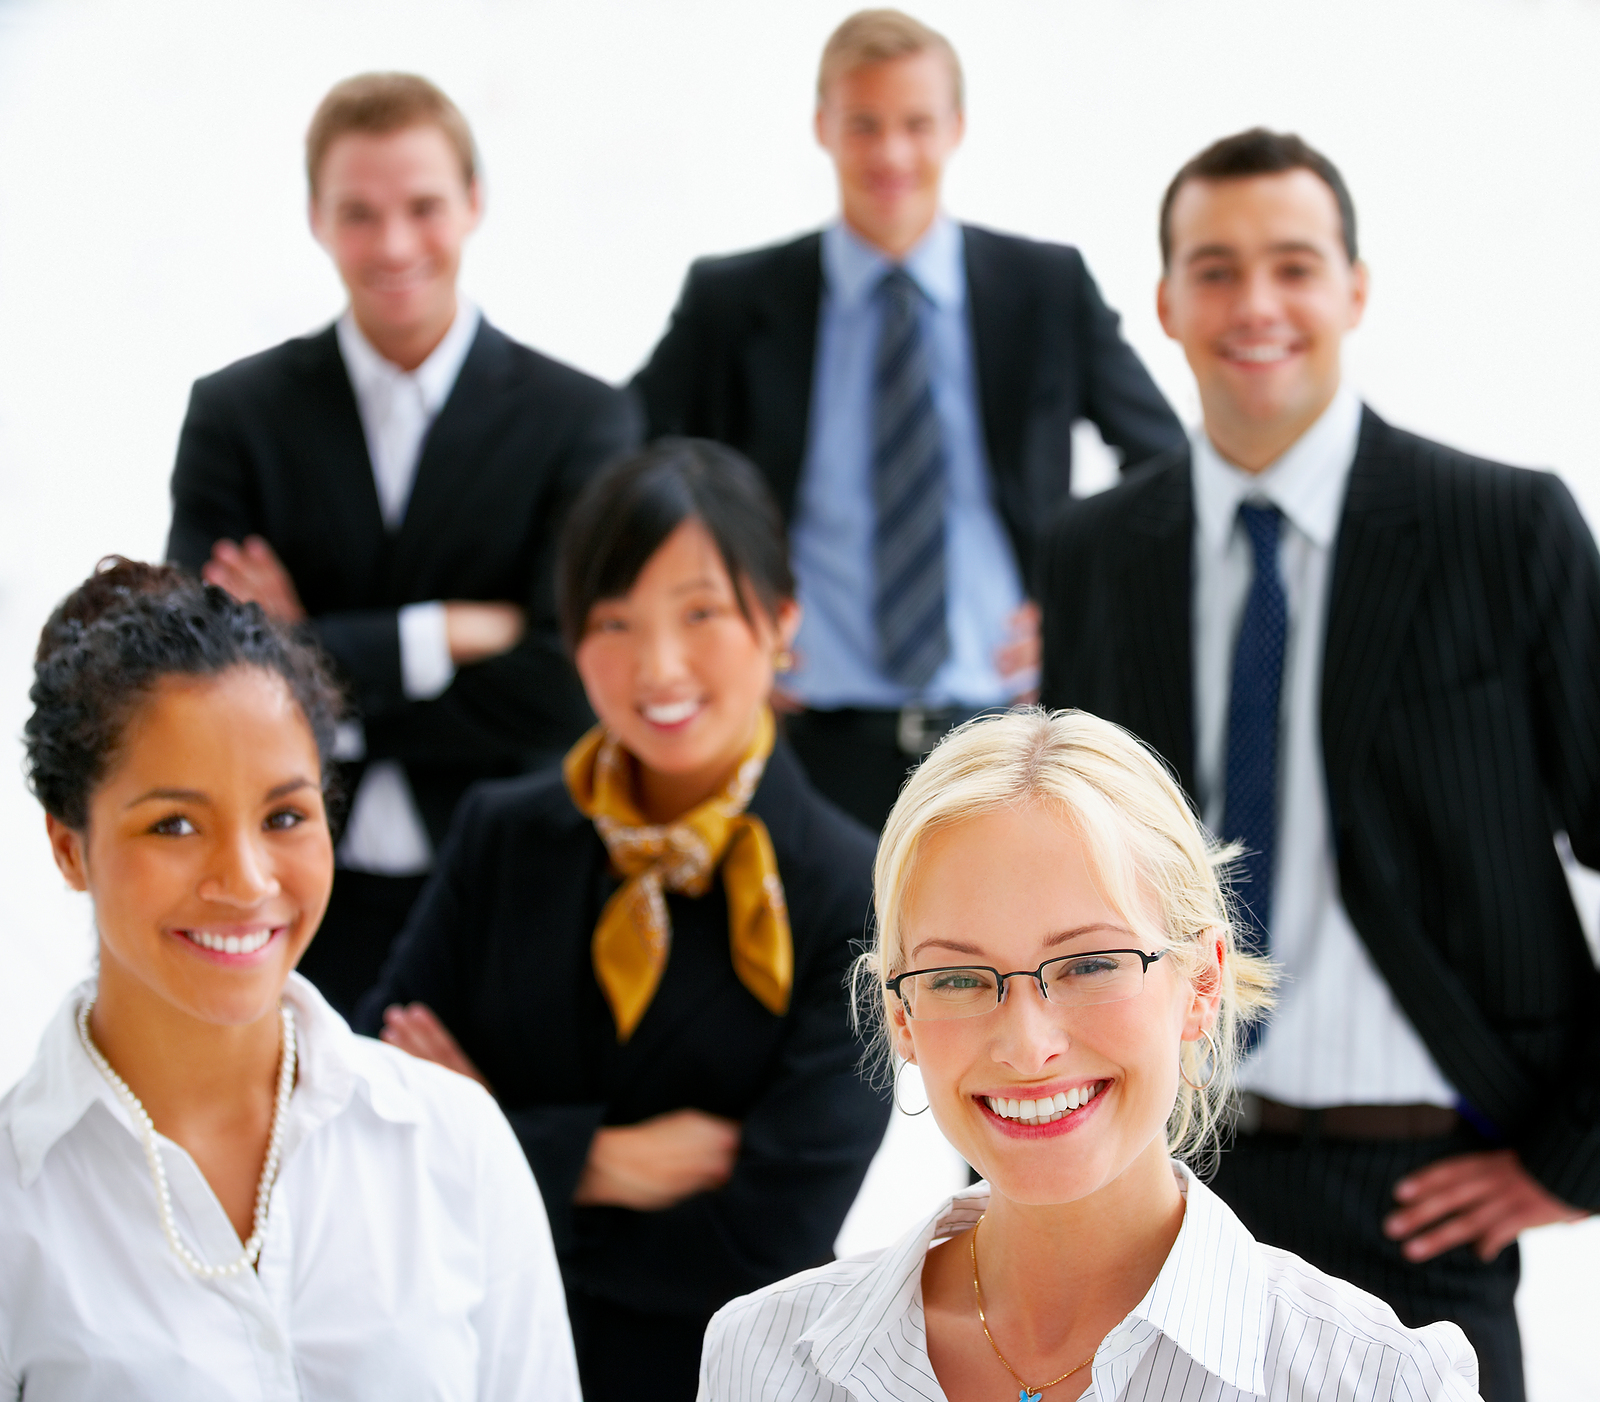 Employees Clients Happy: Happy Employees Can Greatly Benefit Employers